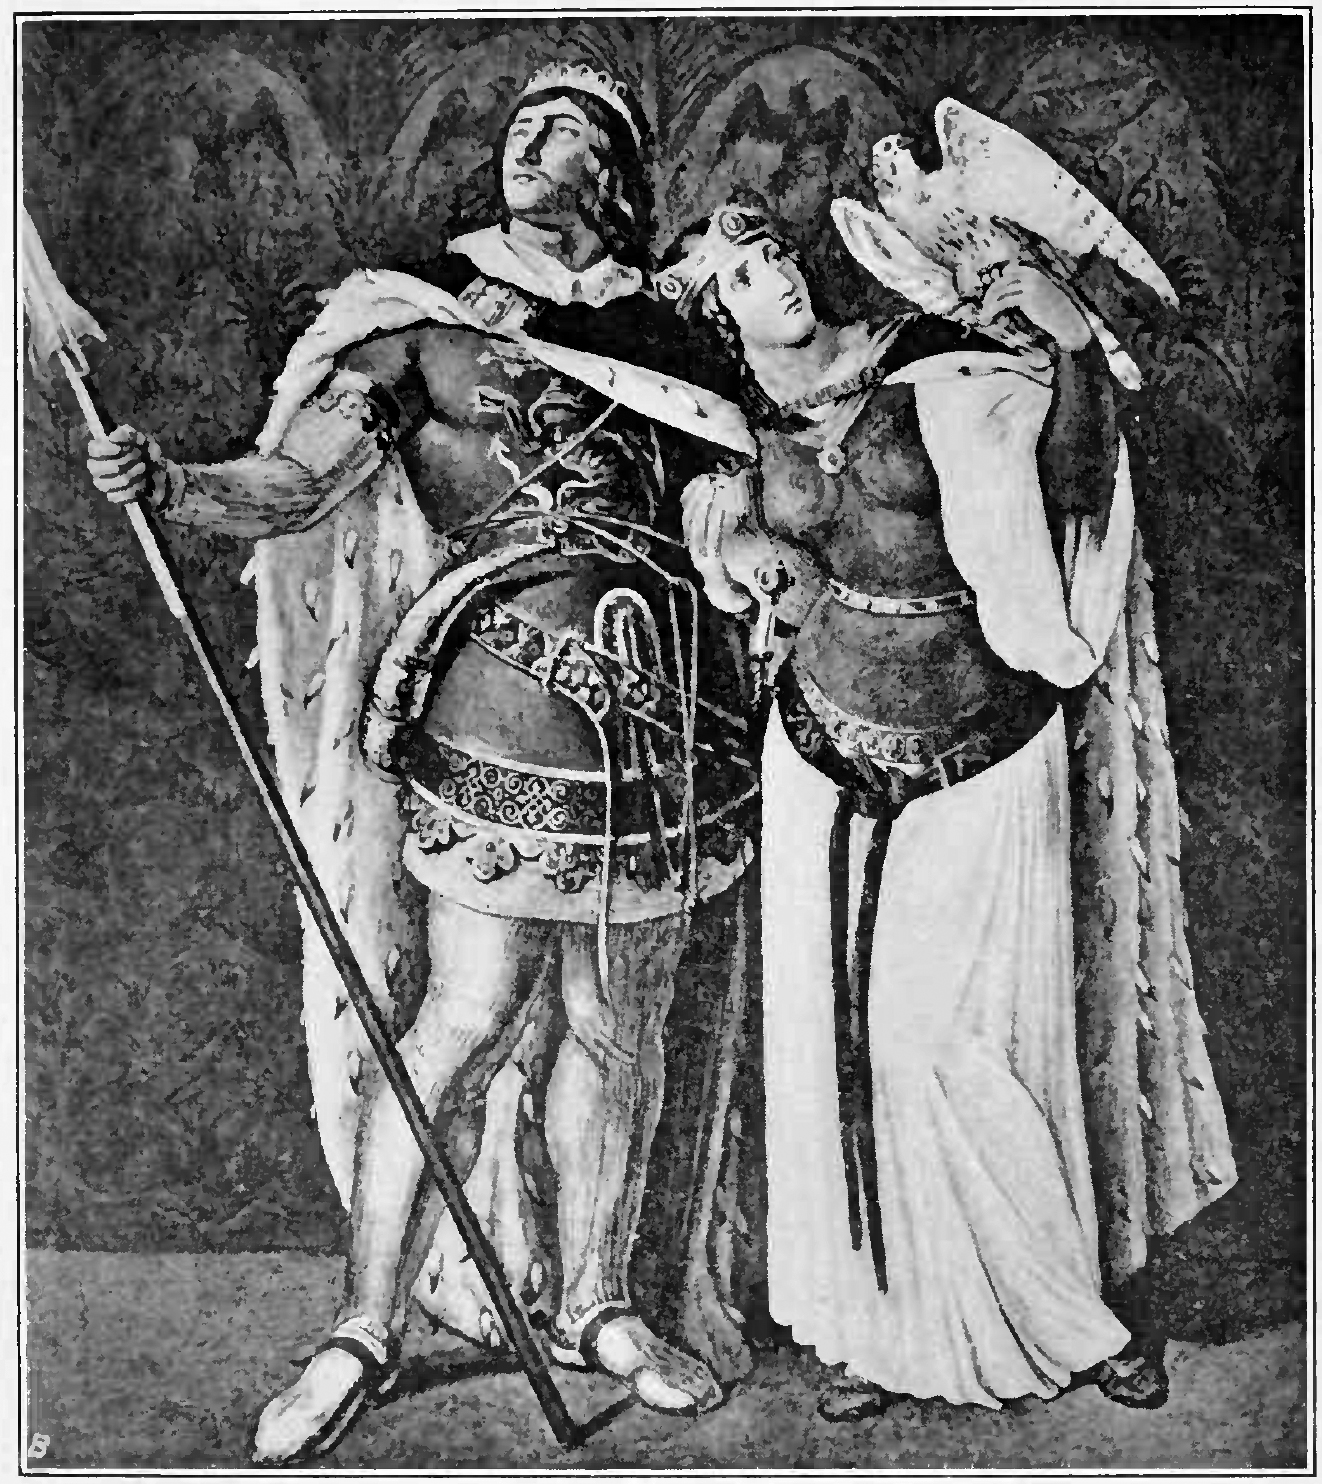 http://en.academic.ru/pictures/enwiki/83/Siegfried_and_Kriemhild.jpg